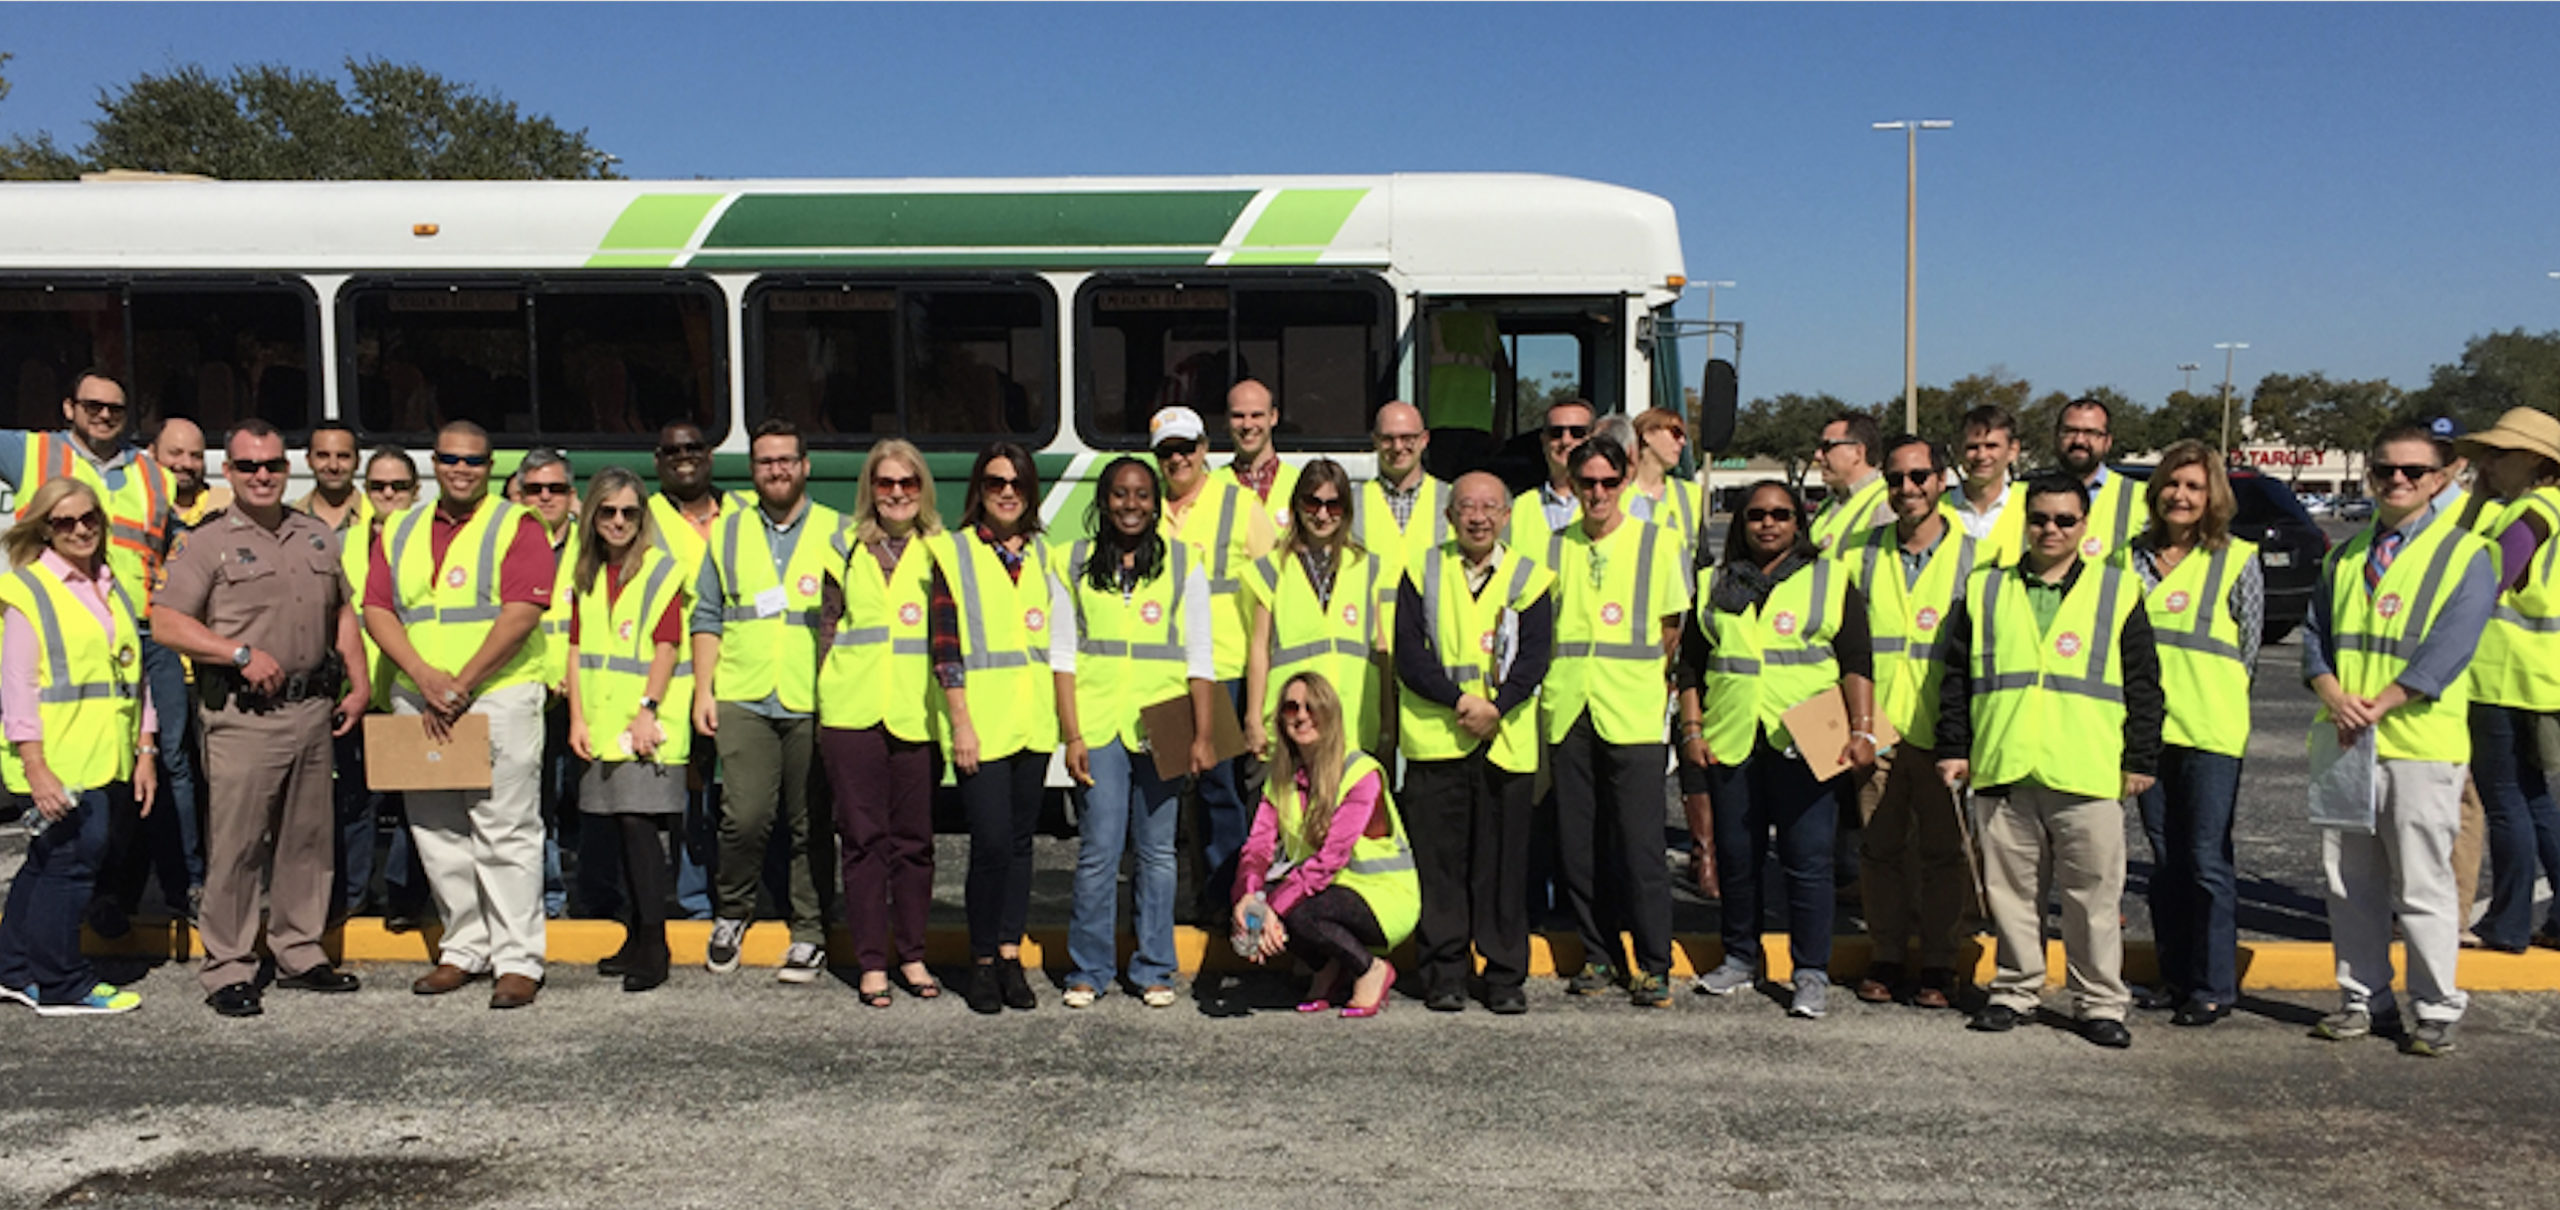 A group of people in safety vests standing outside in front of a bus